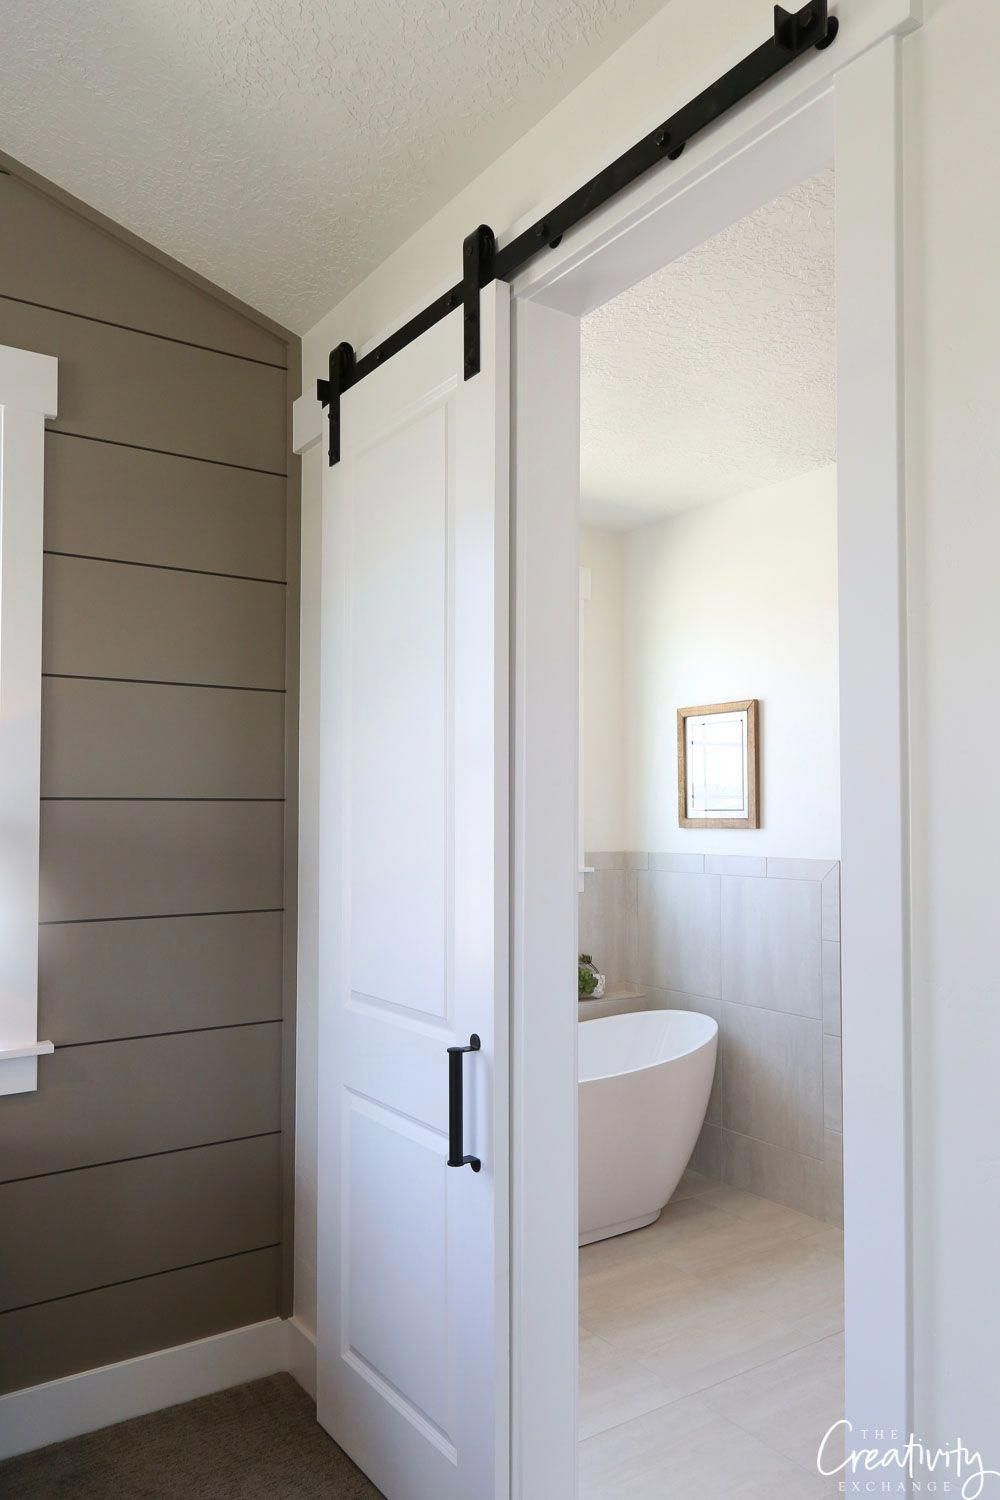 Discover 48 Motivation With Recyden Com Paints Find Motivation For Restroom Paint Shades And Also Try Out Bedroom Barn Door Bathroom Barn Door White Barn Door